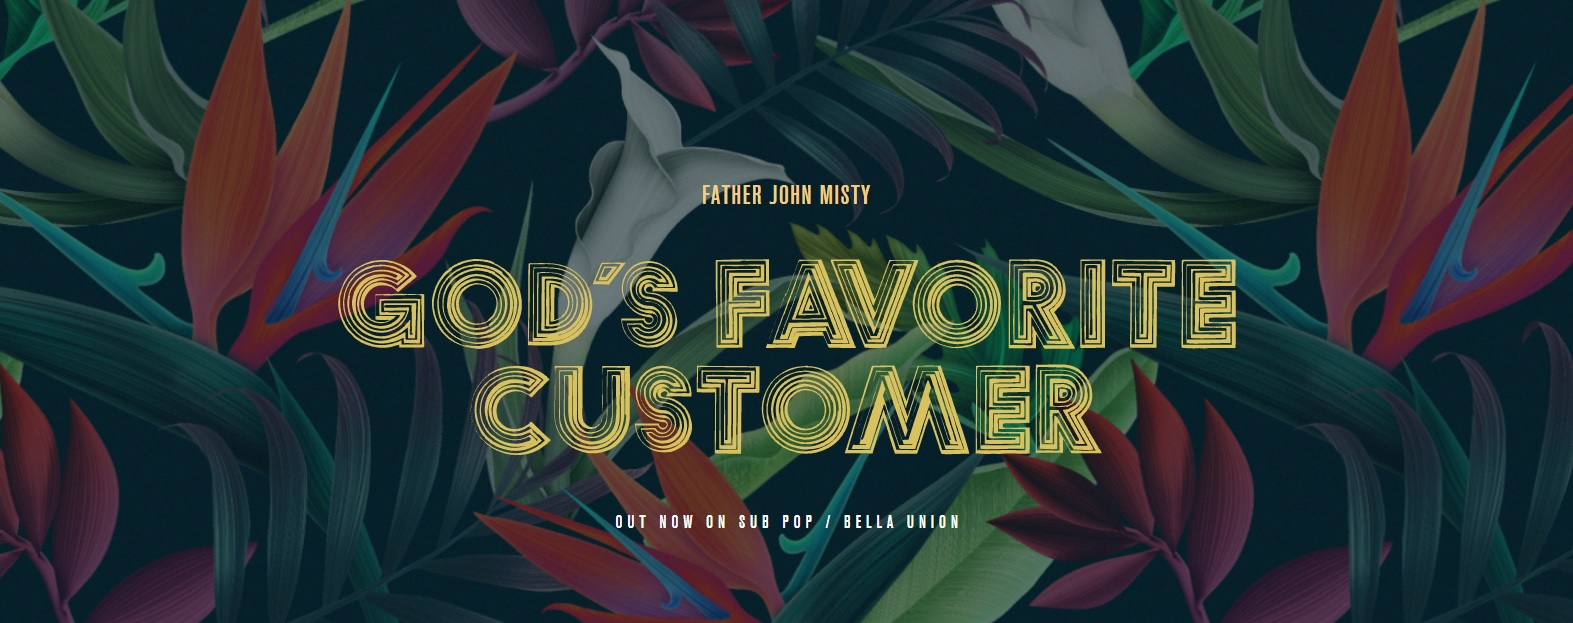 God's Favorite Customer banner